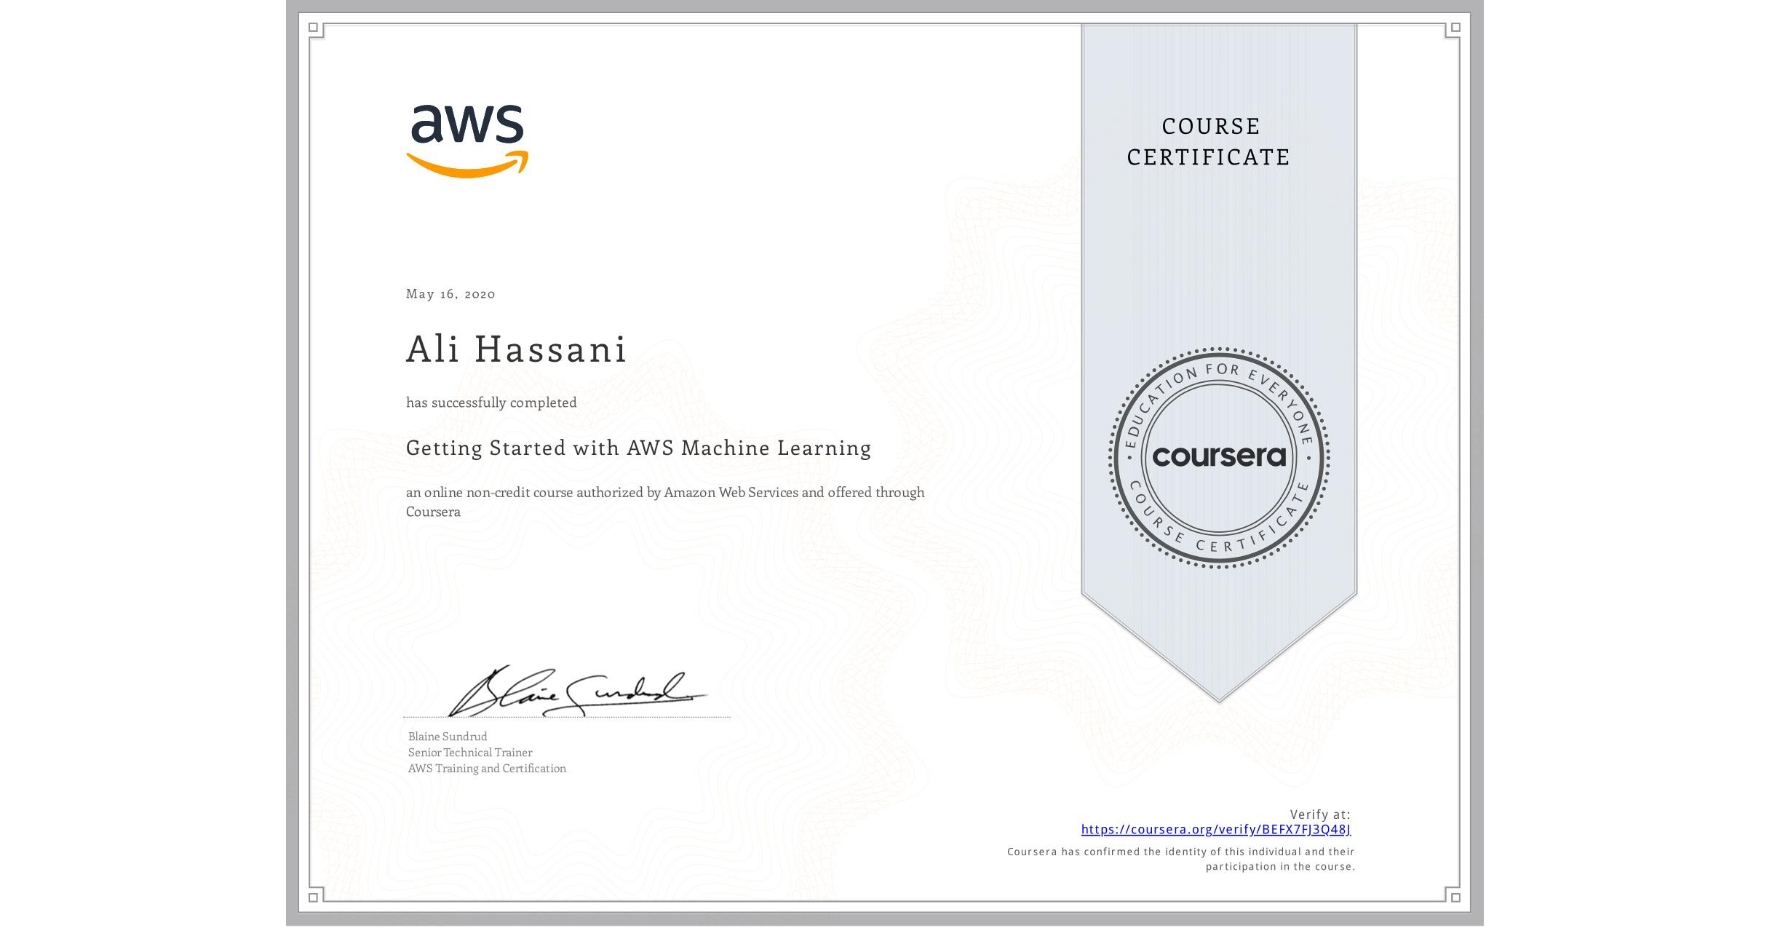 View certificate for Ali Hassani, Getting Started with AWS Machine Learning, an online non-credit course authorized by Amazon Web Services and offered through Coursera